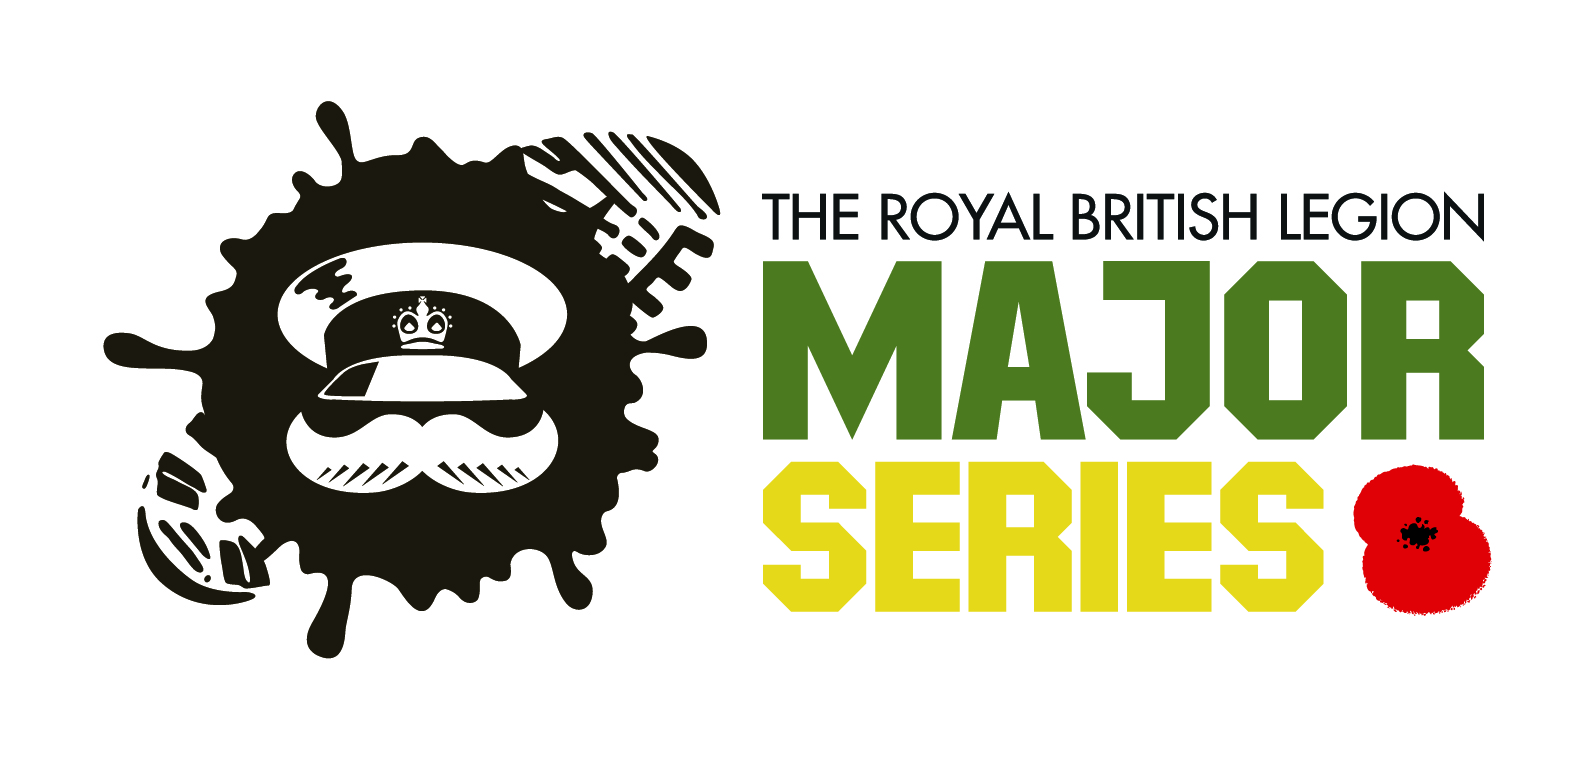 major series royal british legion